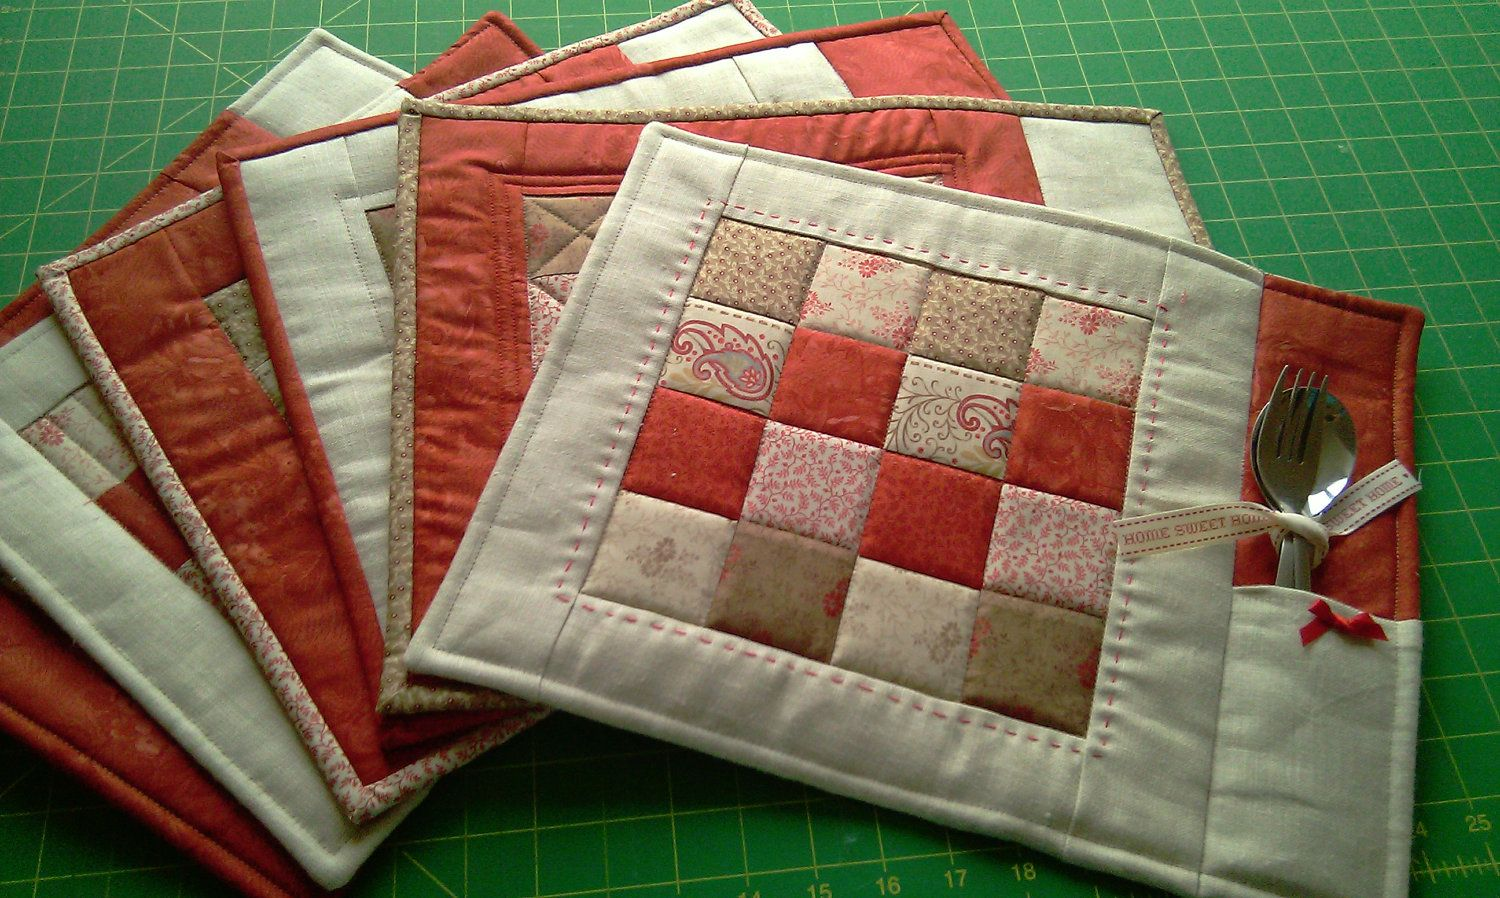 quilted placemat pattern measurements | Like this item? | Crafts ... : quilted placemat pattern - Adamdwight.com